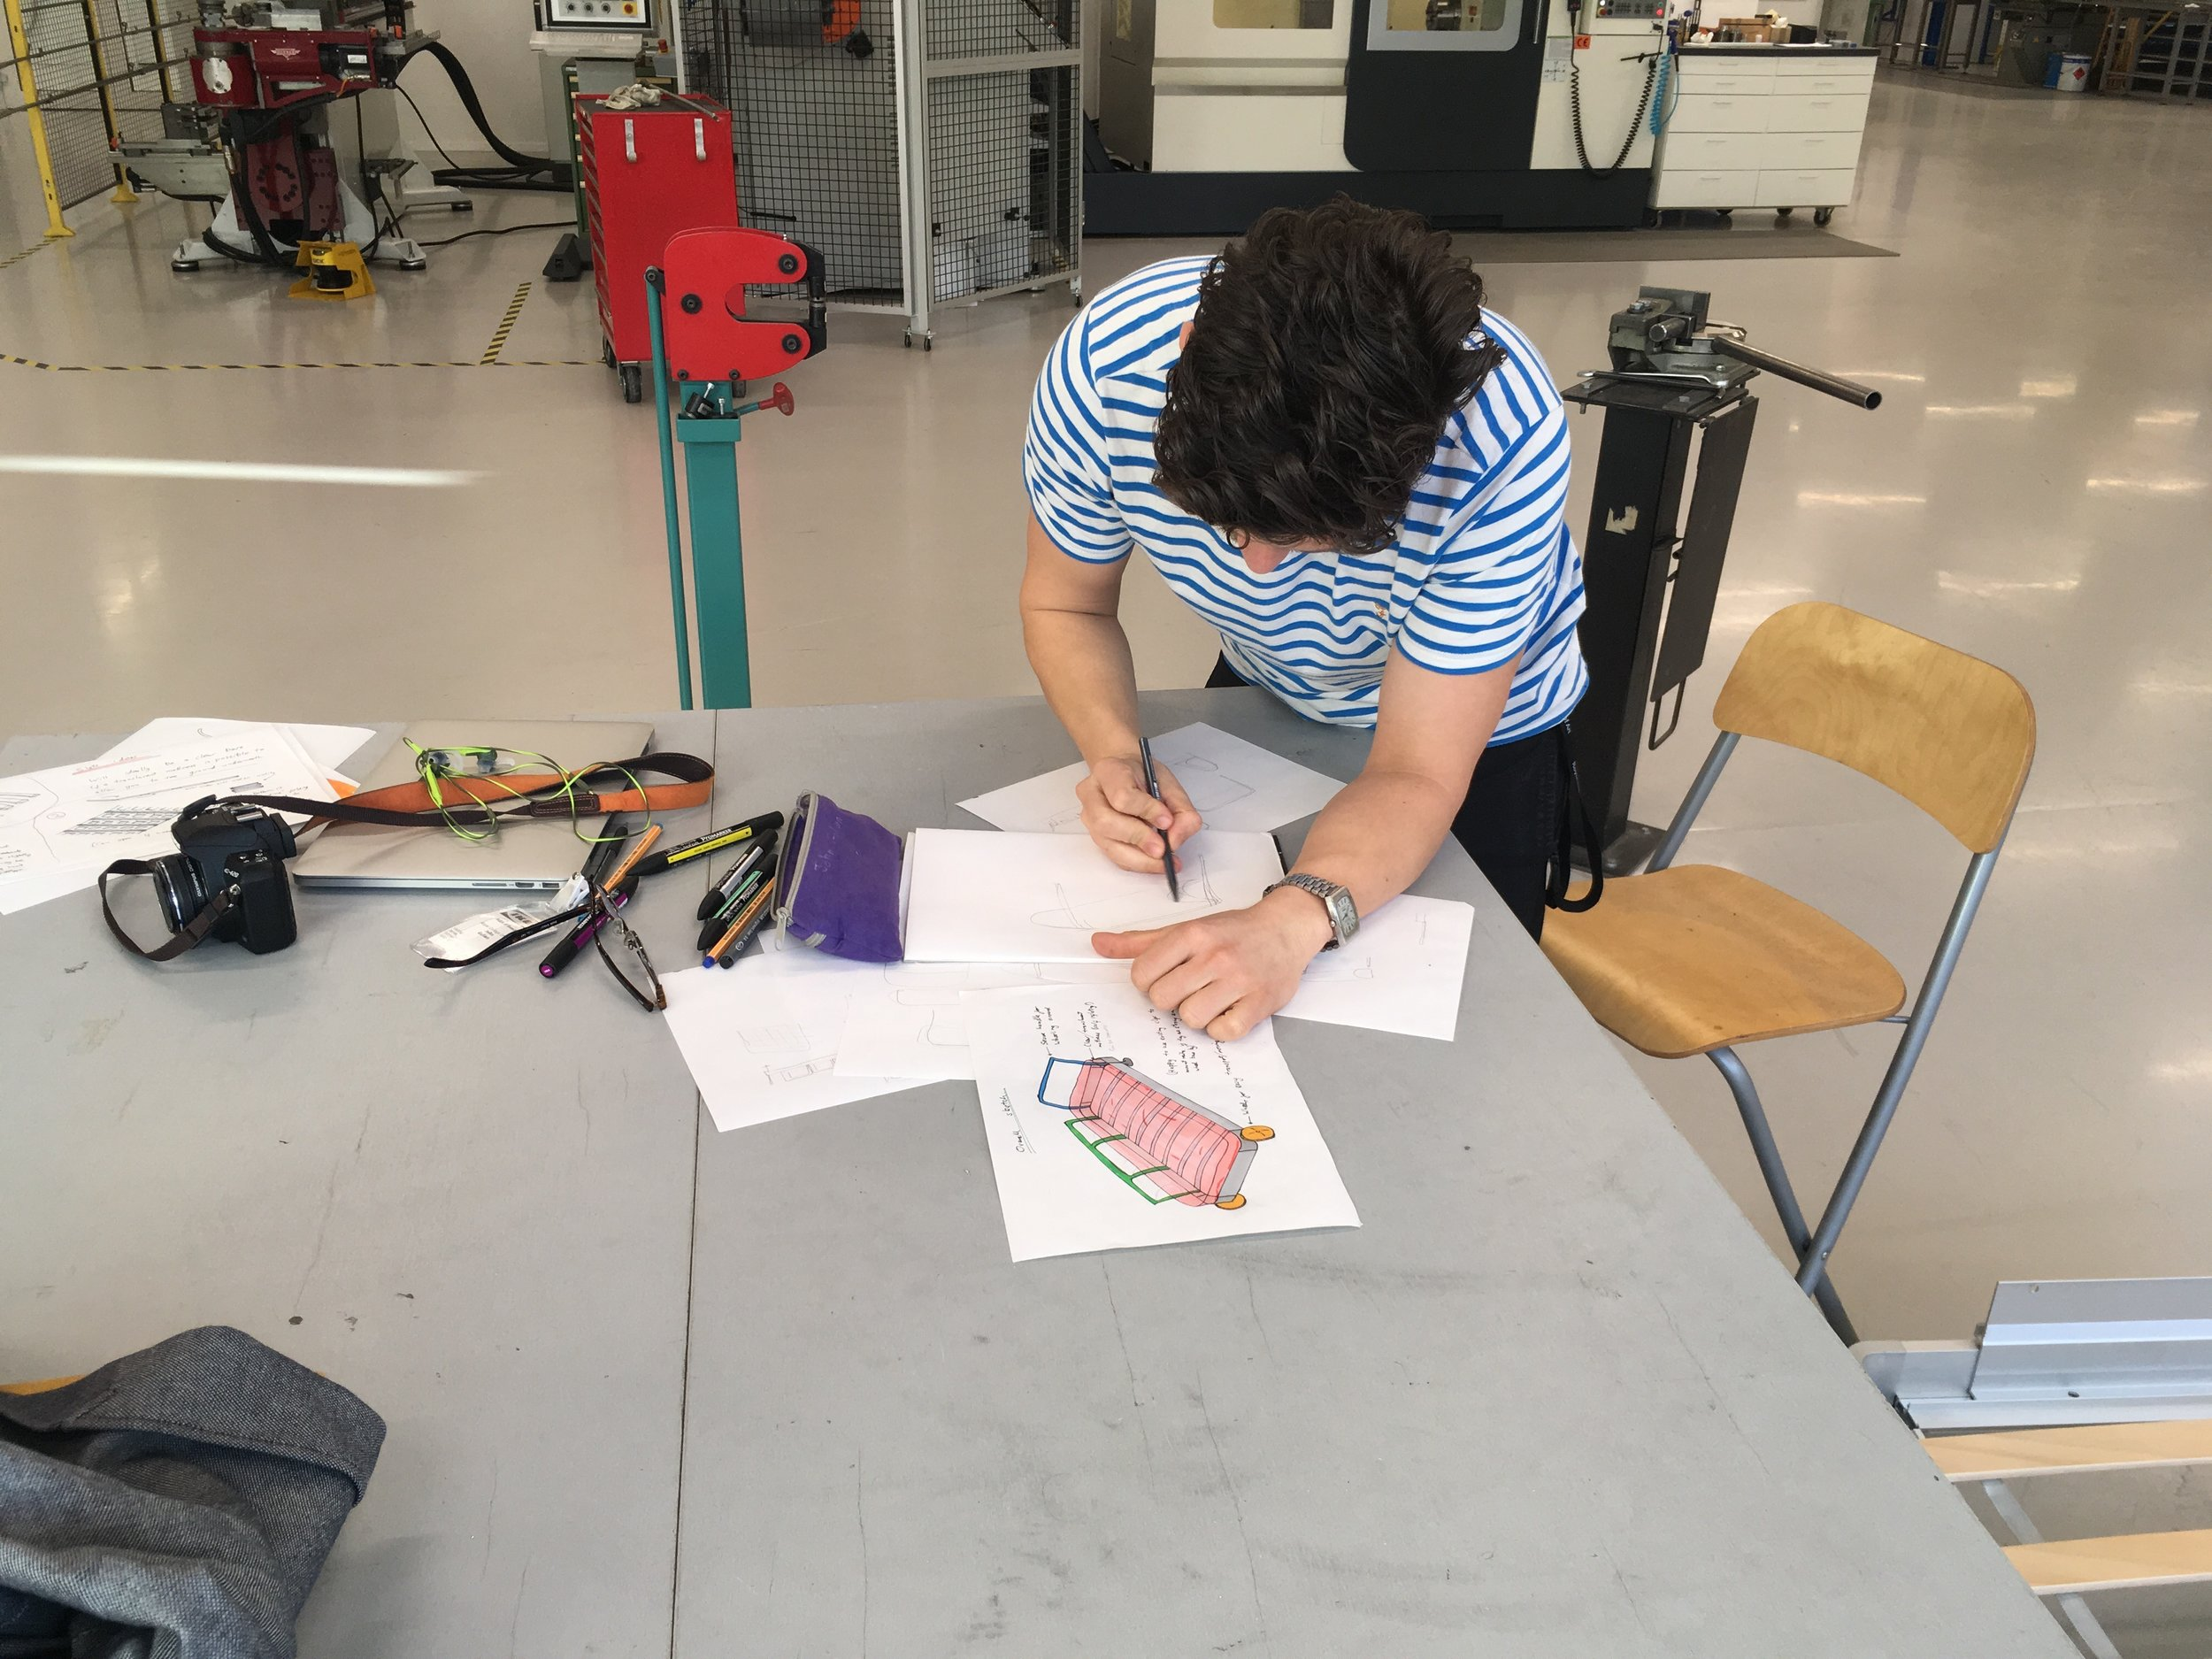 Me sketching in IKEA's metal shop, ready for prototyping